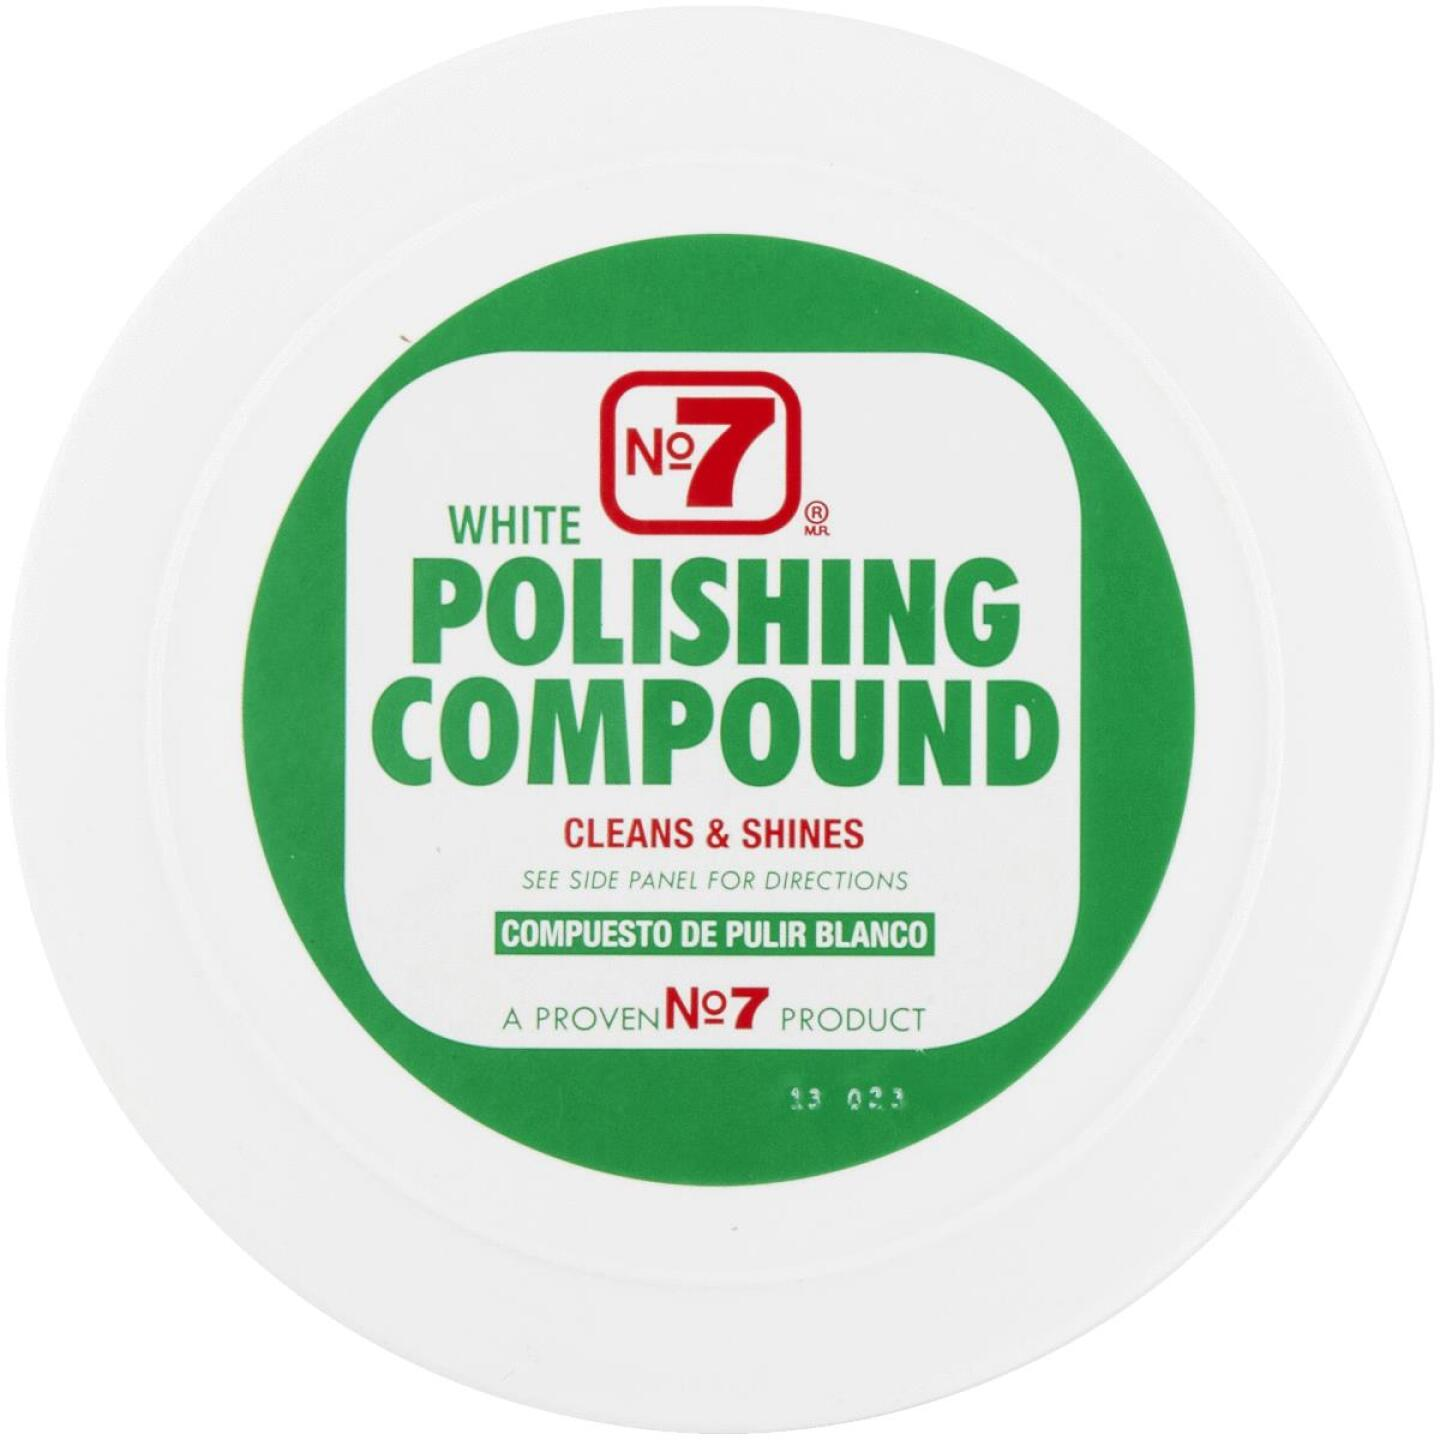 NO. 7,  10 oz Paste White Polishing Compound Image 3